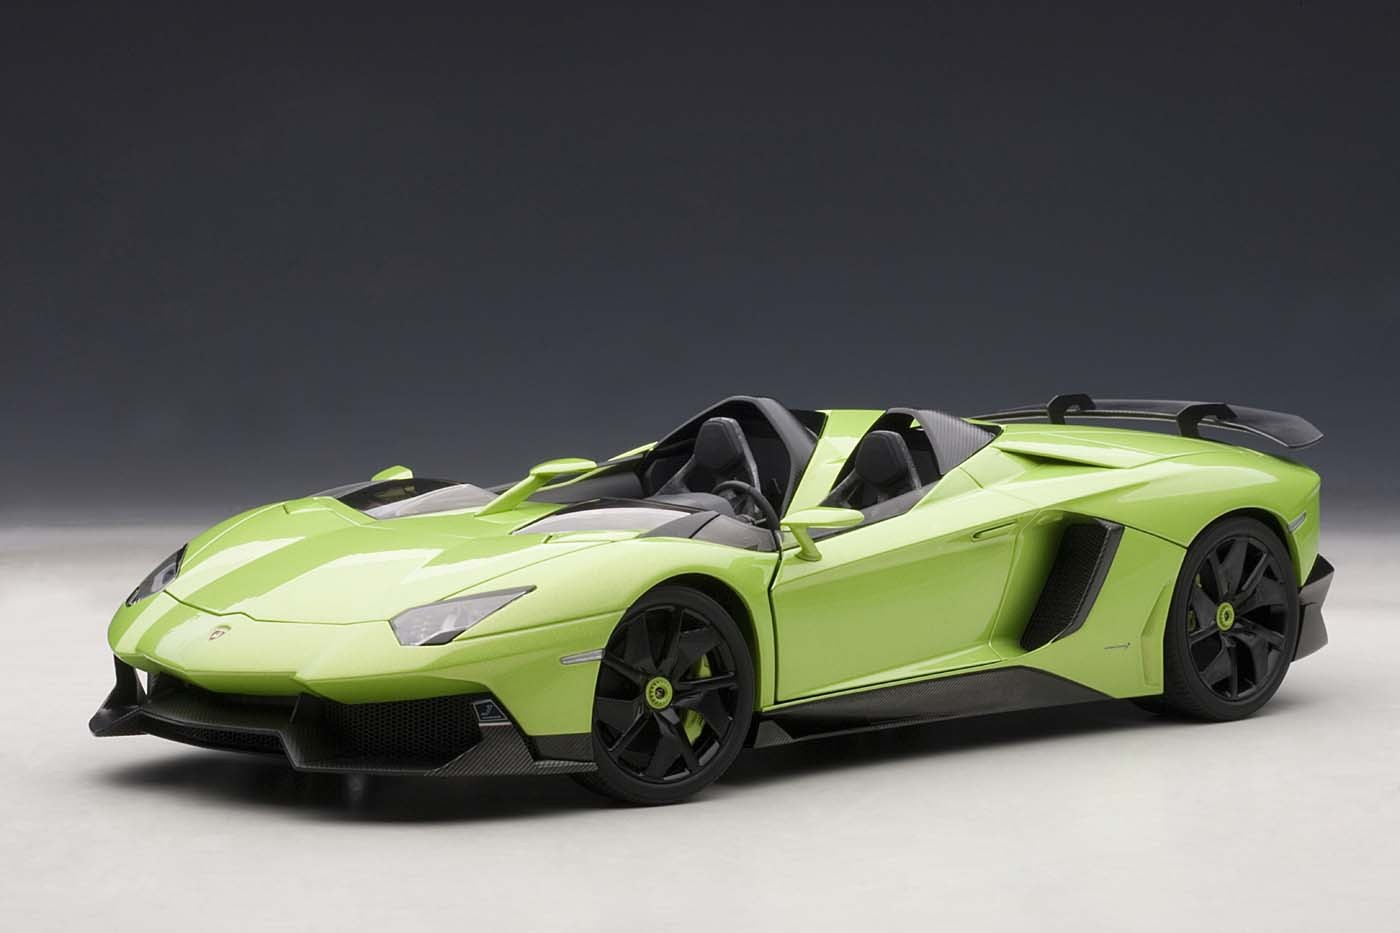 Perfect Lamborghini Aventador J Green 1/18 Diecast Car Model By AutoArt